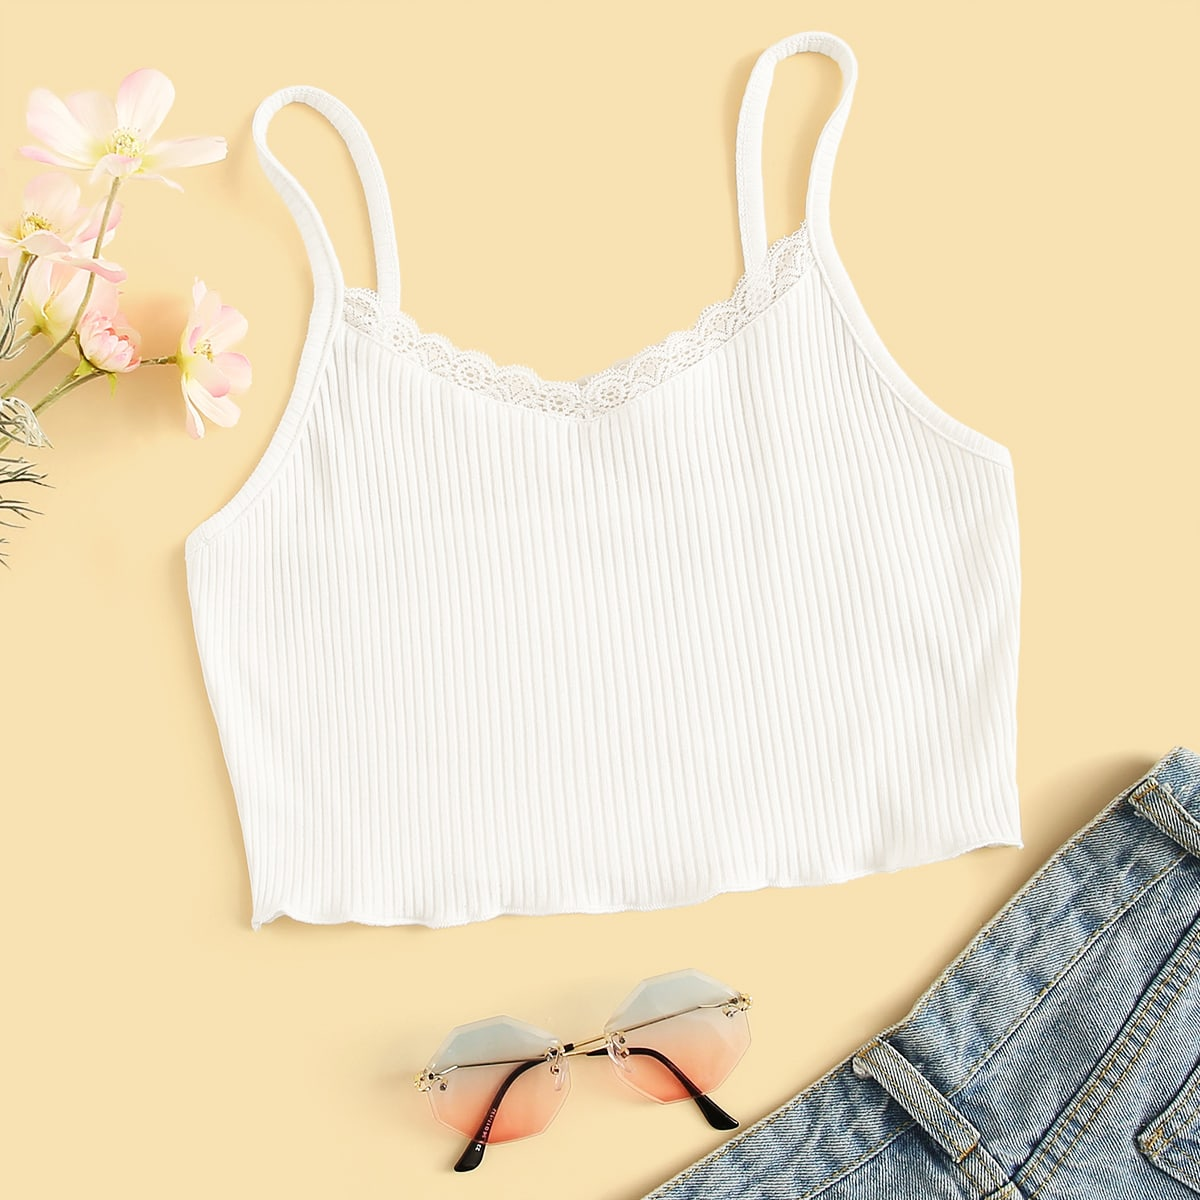 SHEIN coupon: Scalloped Lace Ribbed Cropped Cami Top